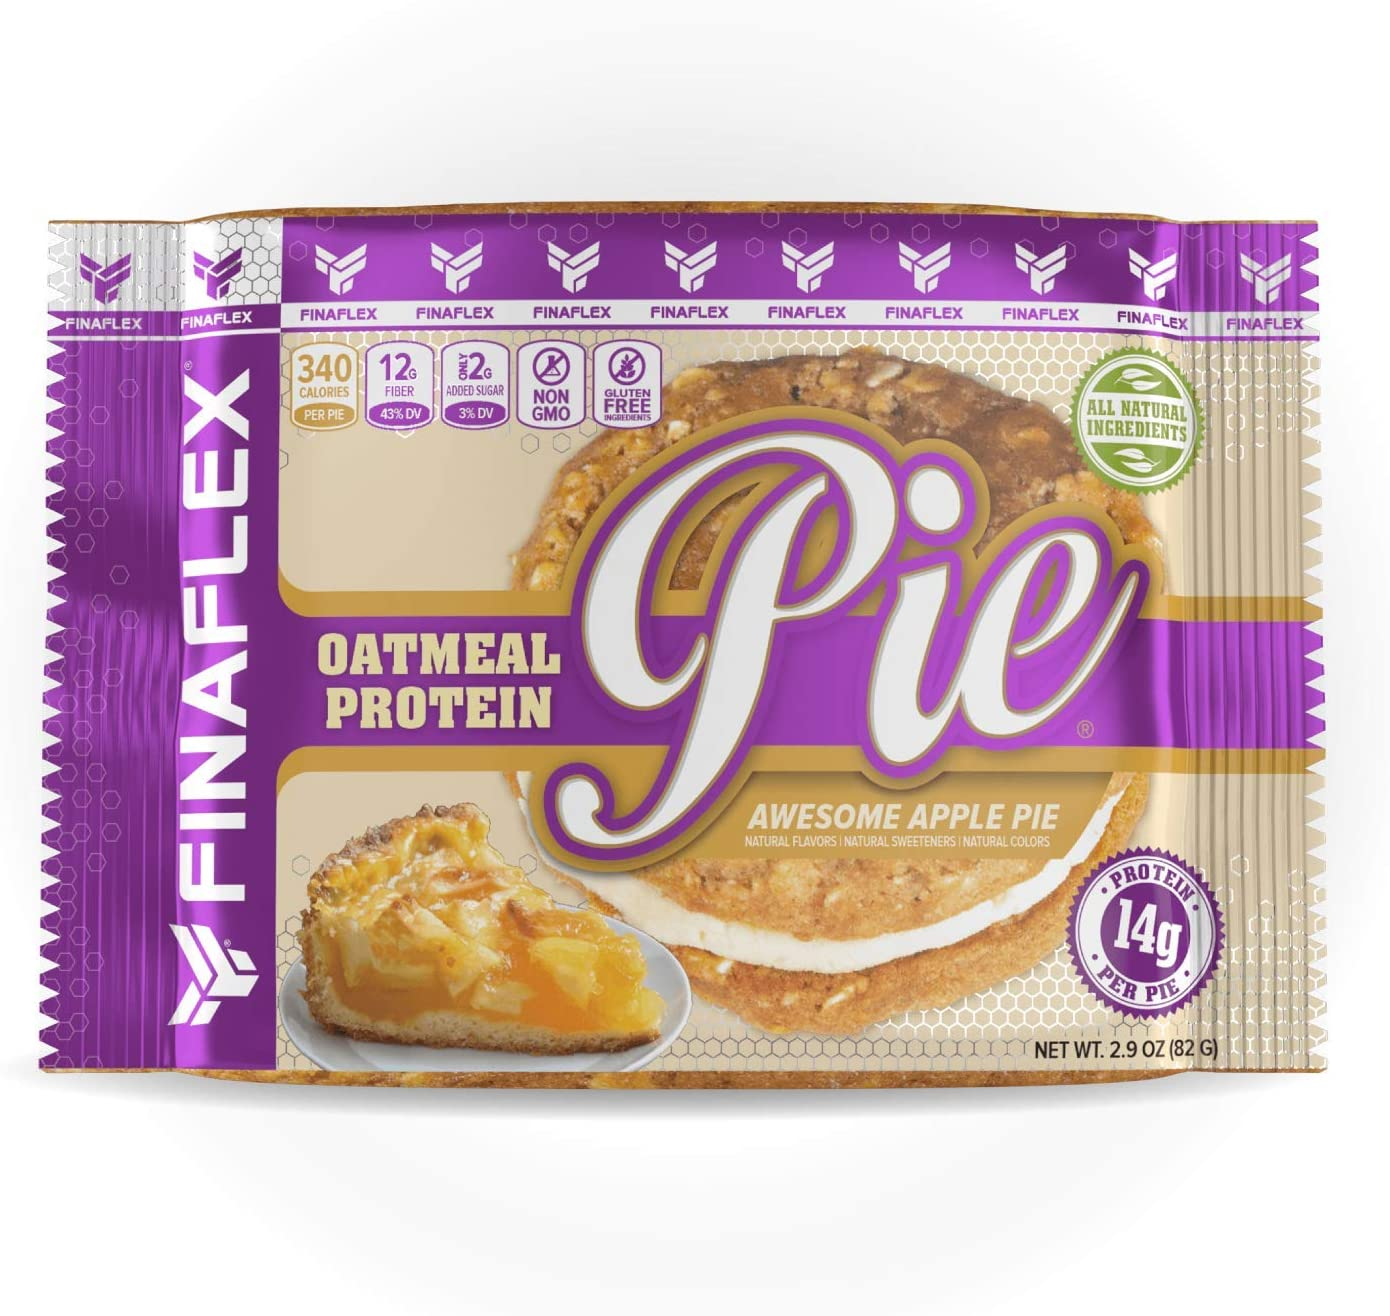 Oatmeal Protein Pie Awesome Apple Pie, All Natural Soft and Chewy Non GMO Protein Snack, Gluten Free, Kosher, 14g Protein, 12g Fiber, Creamy Marshmallow Protein Filling, Perfect for Kids and Adults